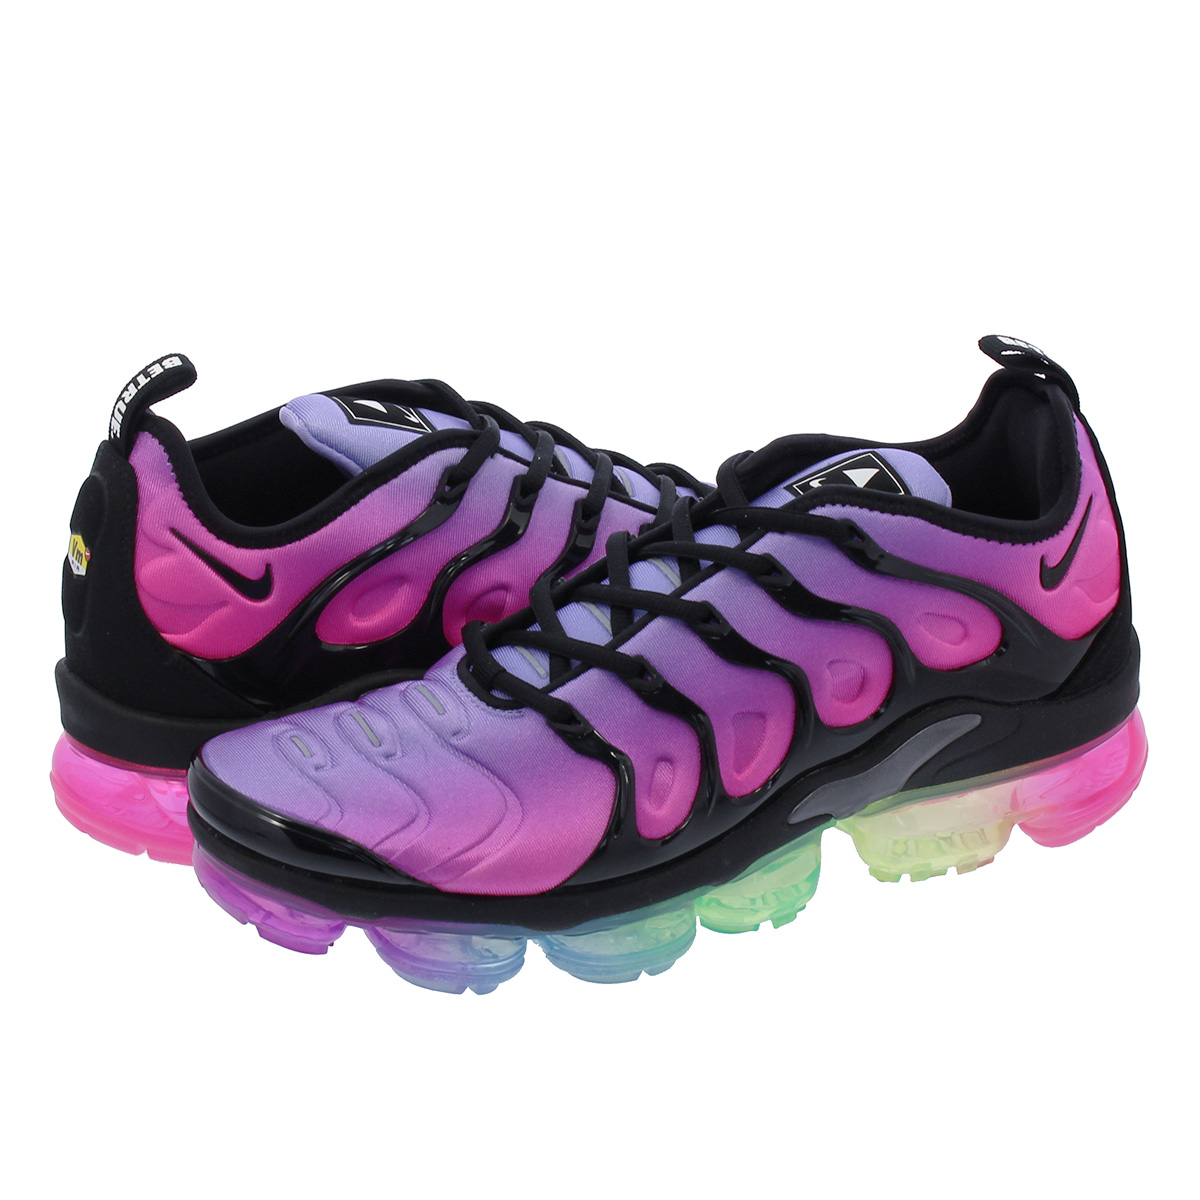 differently 57a66 4a22e NIKE AIR VAPORMAX PLUS Nike vapor max plus PURPLE PULSE/PINK BLAST/MULTI  COLOR/BLACK ar4791-500